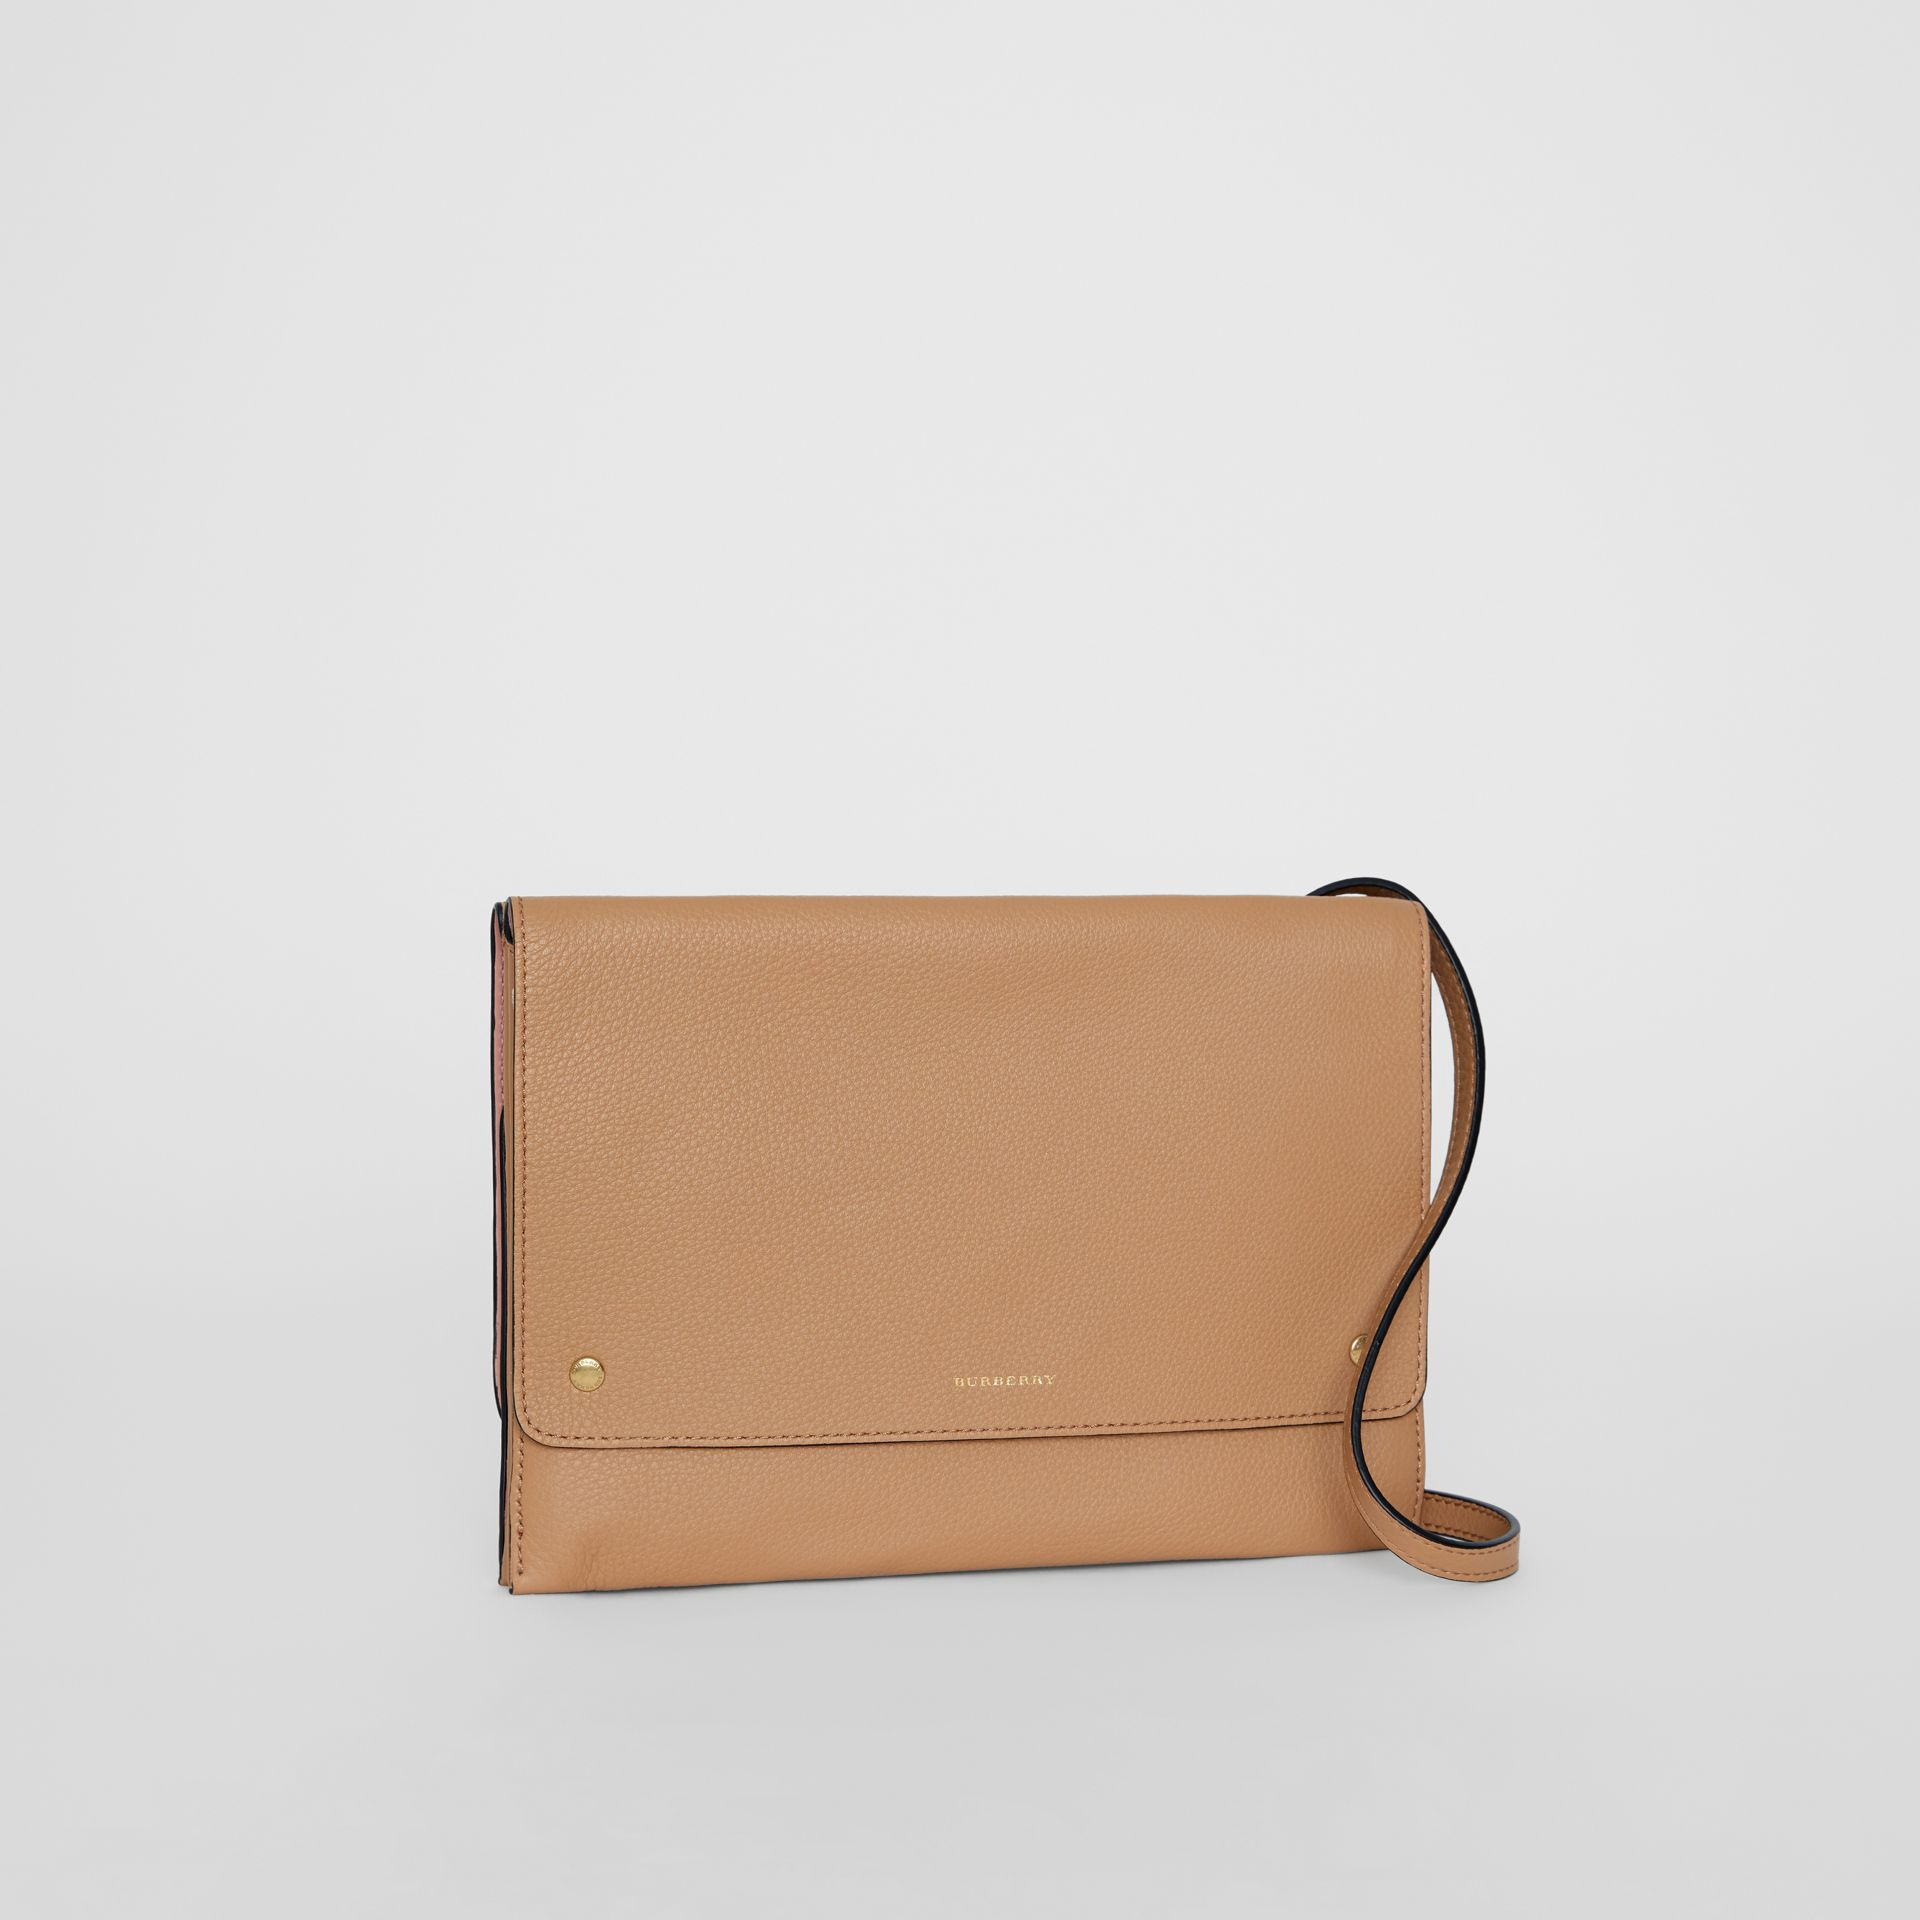 Leather Envelope Crossbody Bag in Light Camel - Women | Burberry United Kingdom - gallery image 6